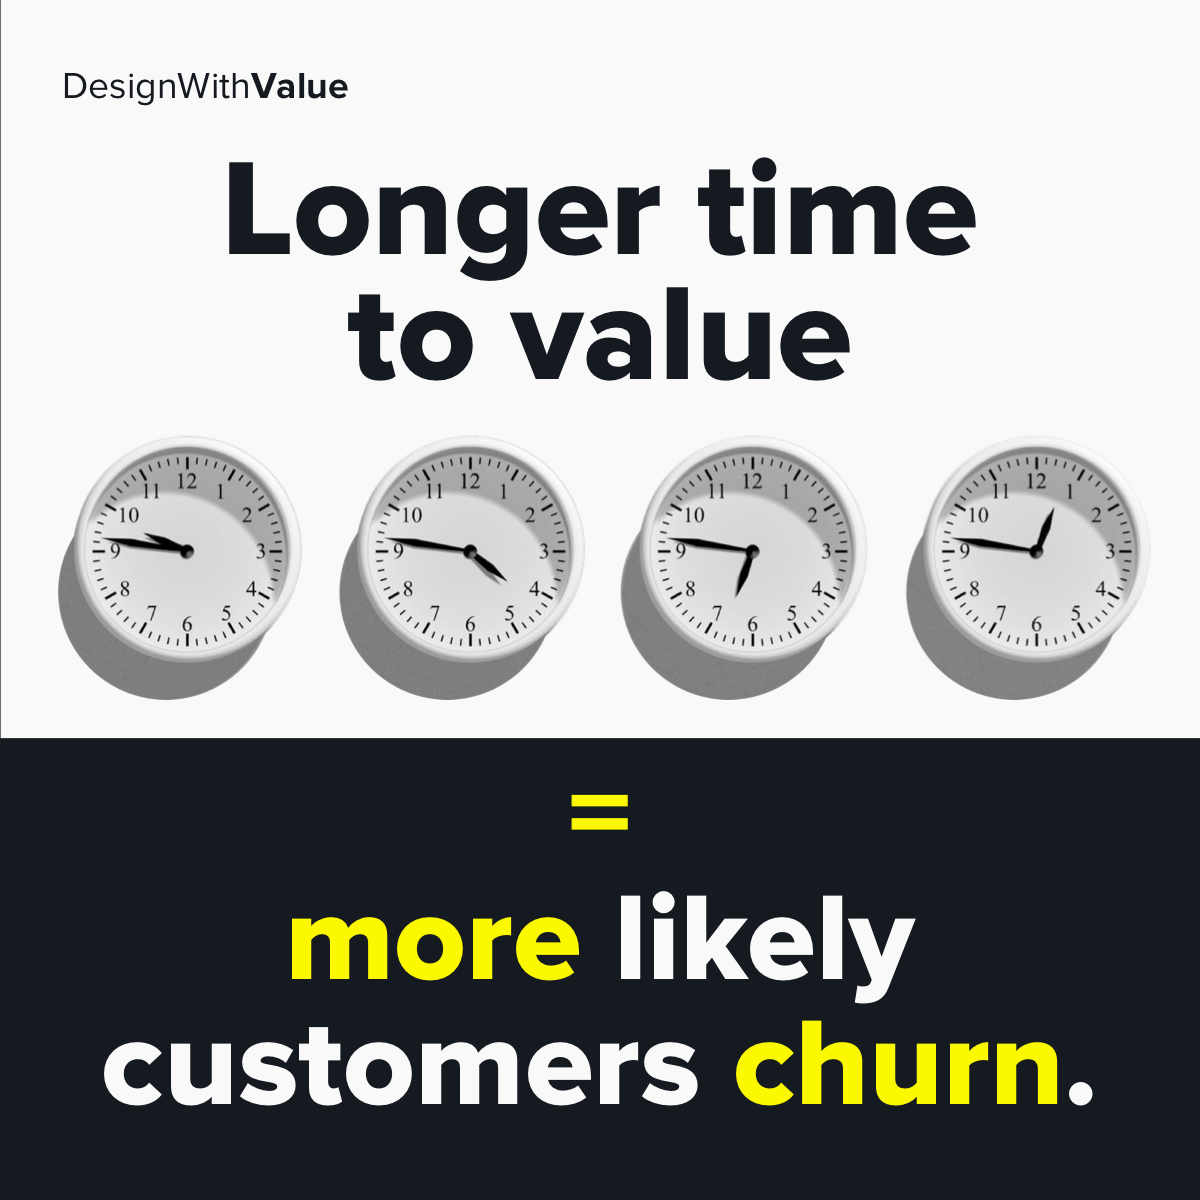 Longer time to value means more likely customers will churn.